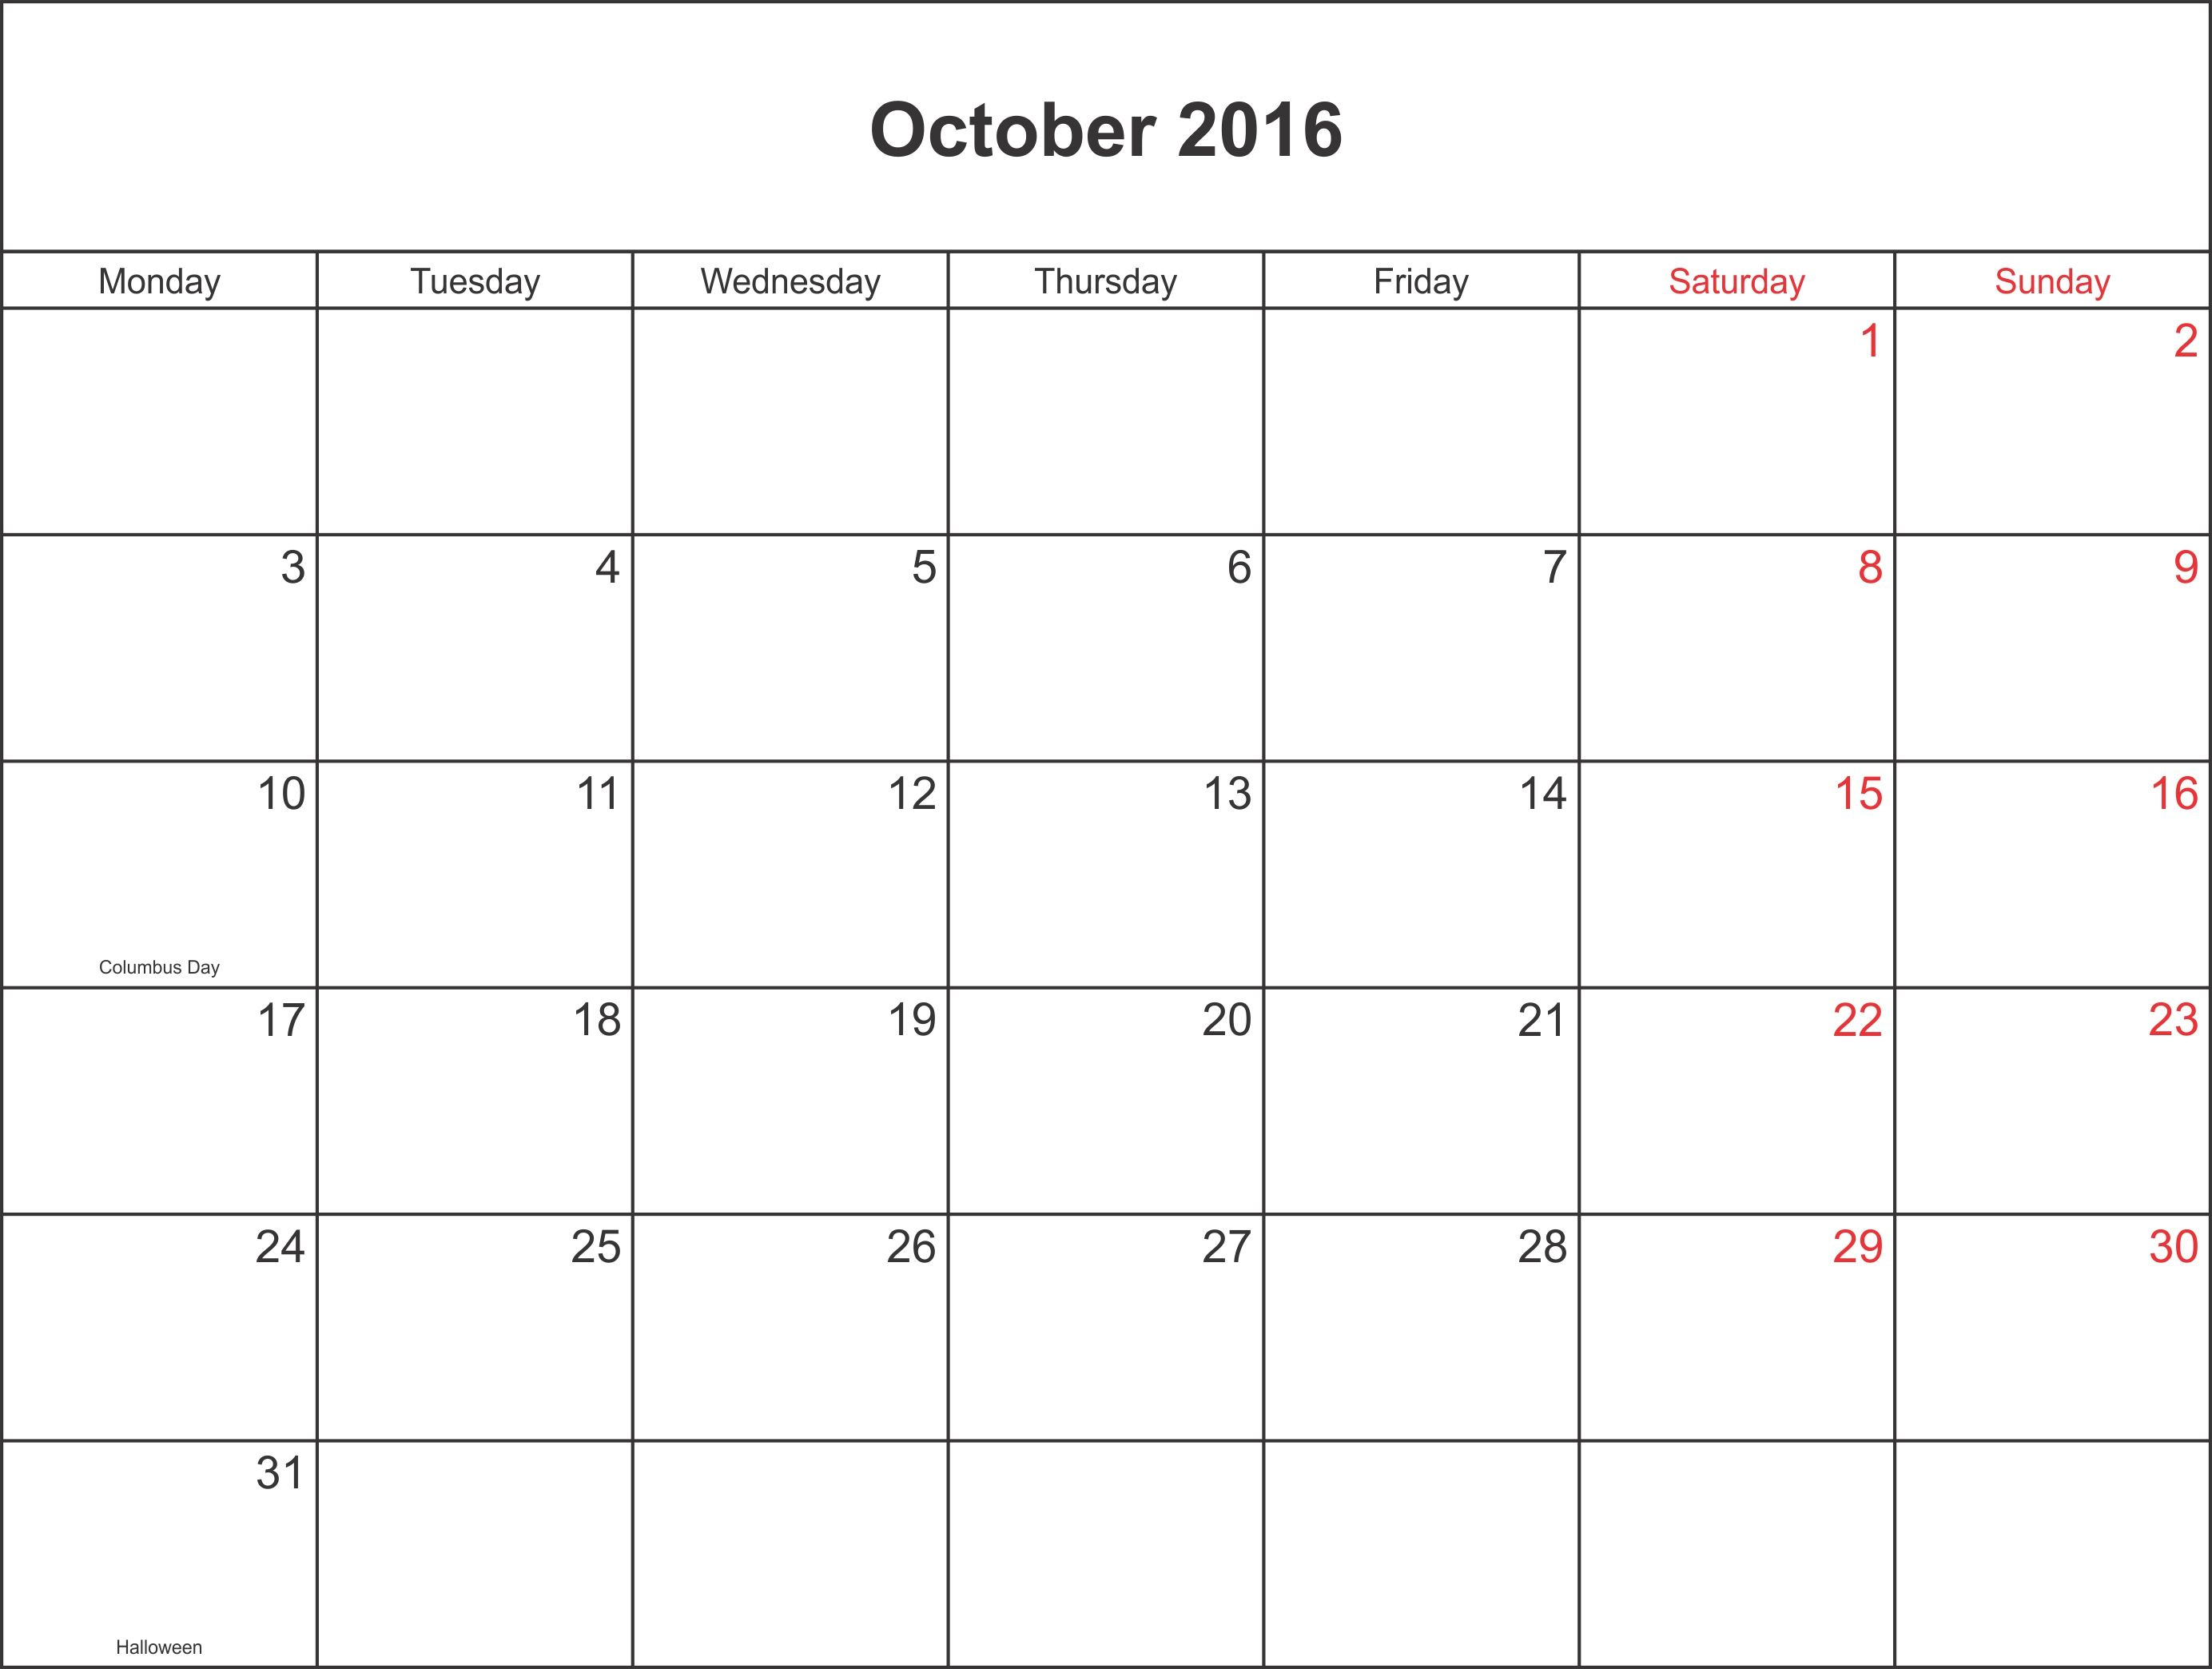 October 2016 Calendar Waterproof : Search Anything About